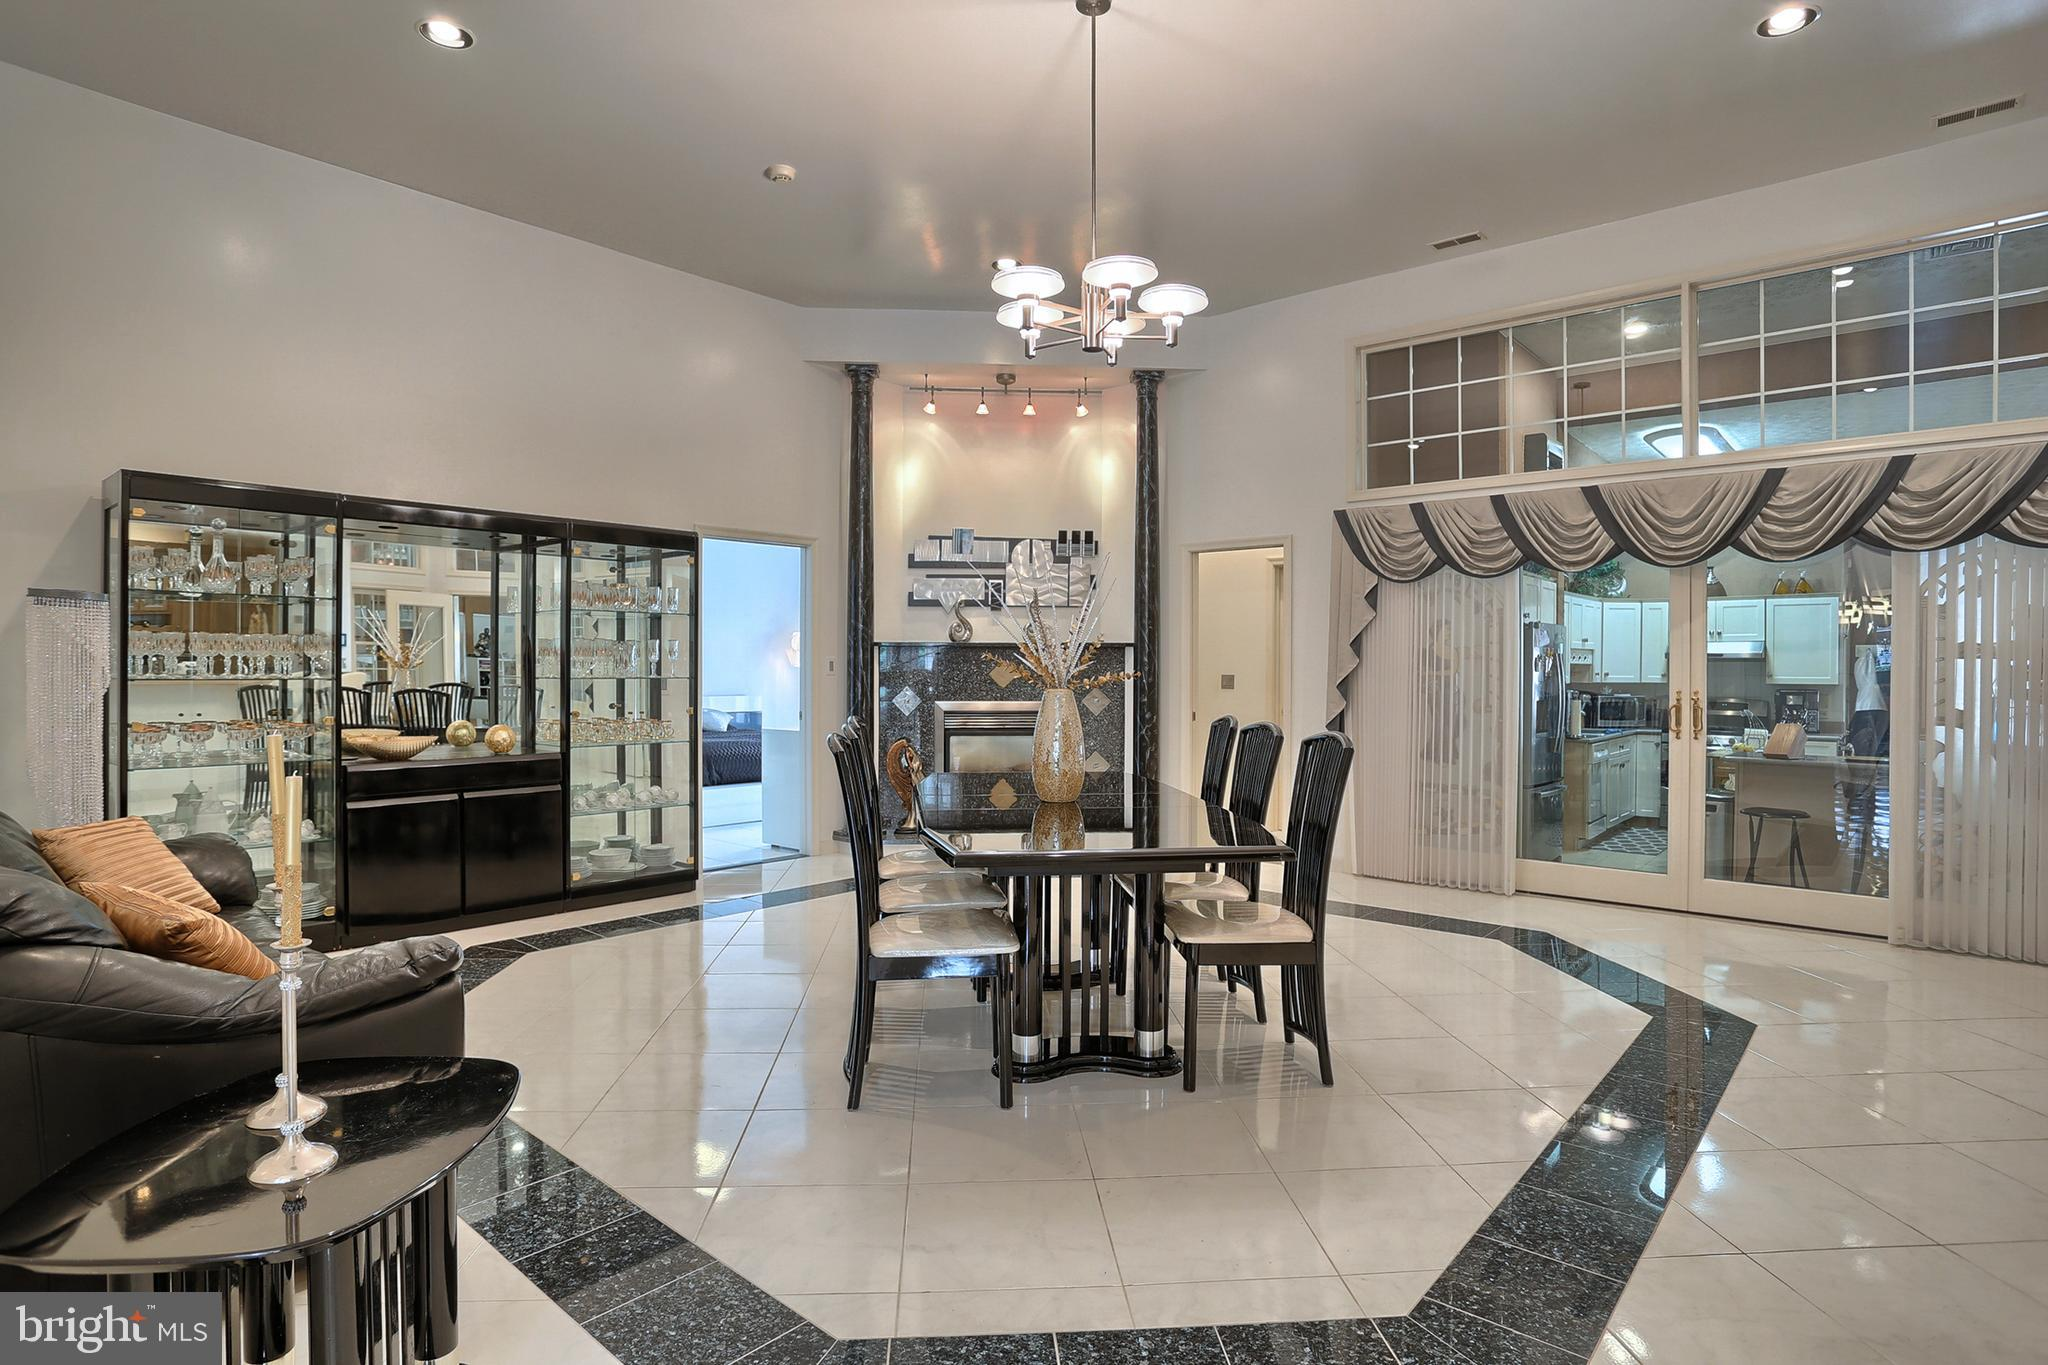 with 14' high ceilings